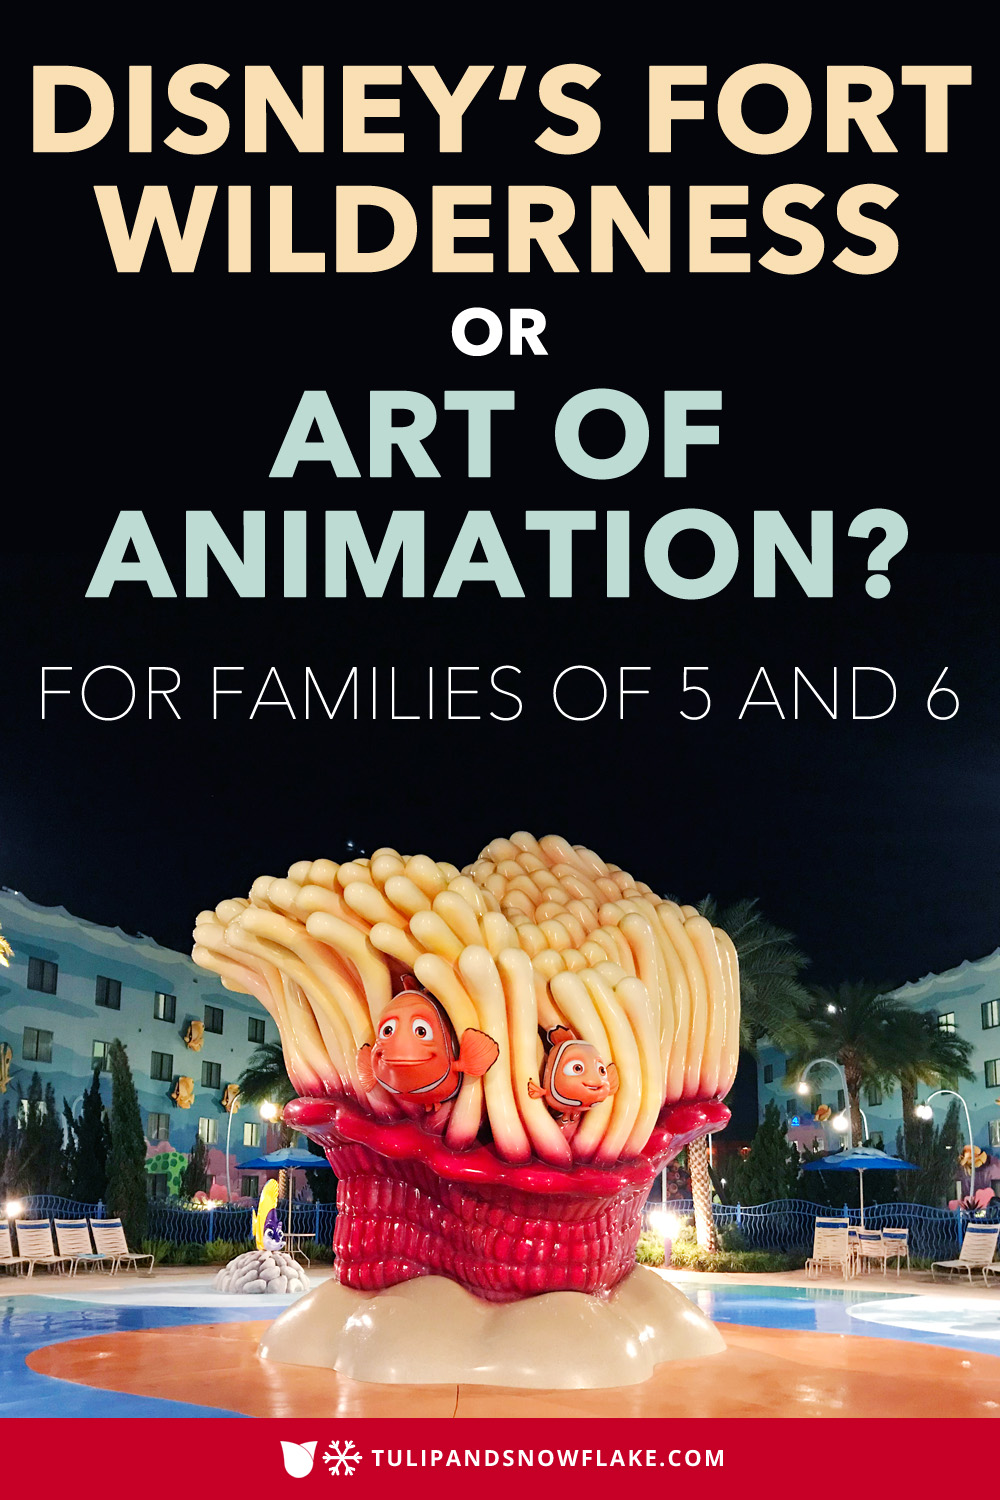 Disney Fort Wilderness cabins vs Art of Animation family suites